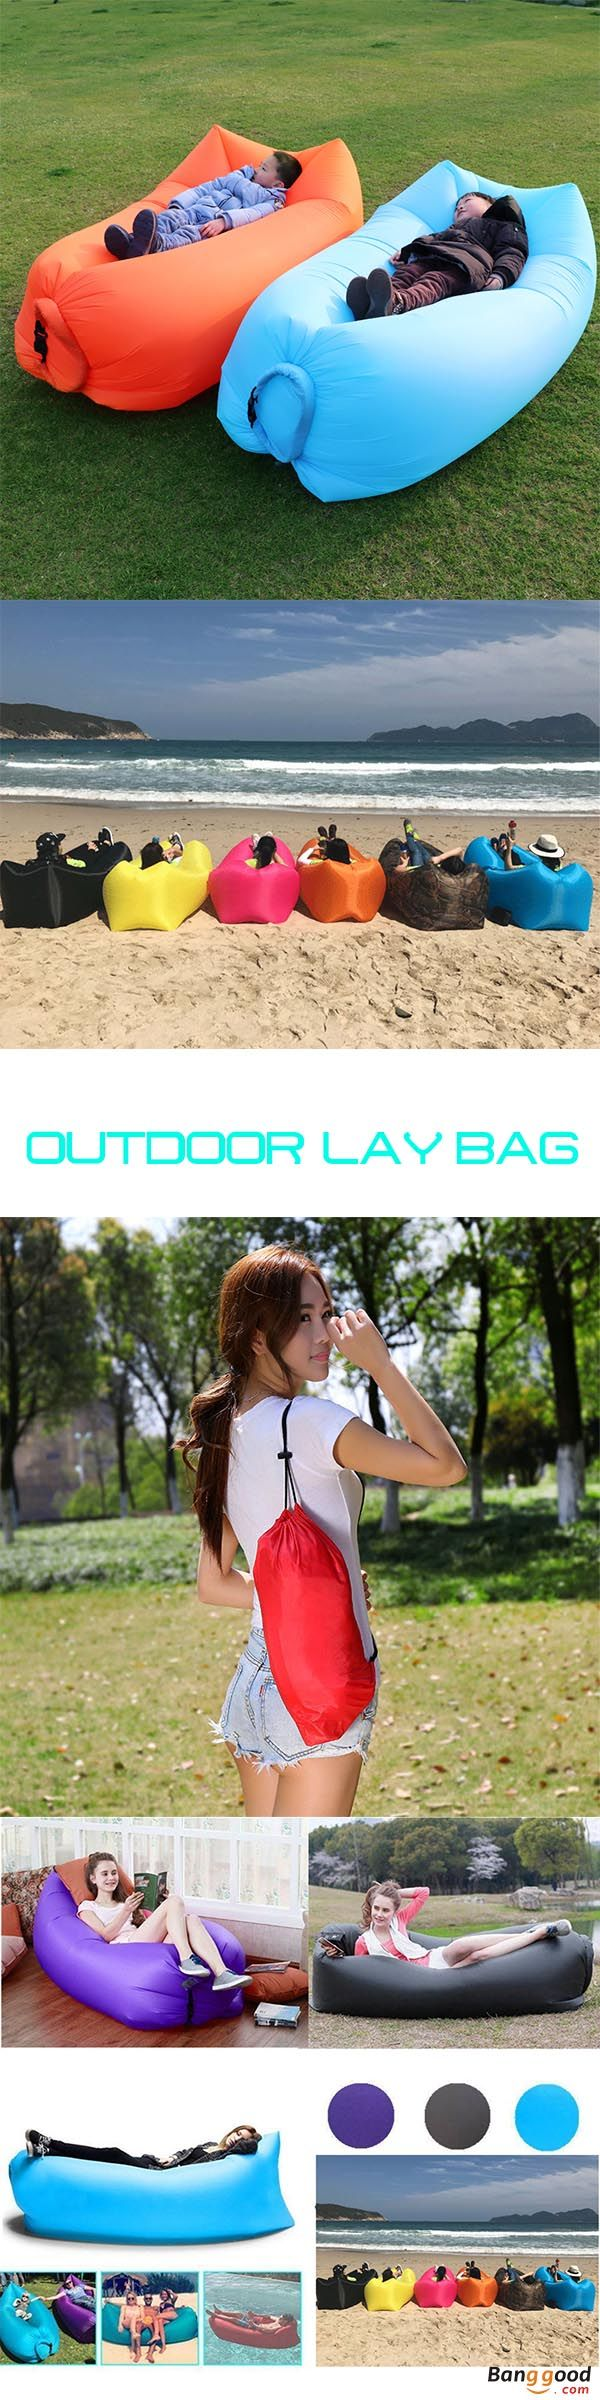 US$15.99 + Free shipping. Outdoor sleeping bag, travel lazy sofa, fast air inflatable sleeping bed,  camping beach lounger lay bag, air sofa. Flat Size: 250 x 75cm/98.4 x 29.5inch.  Inflatable Size: 190 x 70 x 50cm/74.8 x 27.5 x 19.6inch. Storage Size: 39 x 17cm/15 x 6inch. Max Load Bearing	Approx.300kg. 10 Colors to Match Your Style.